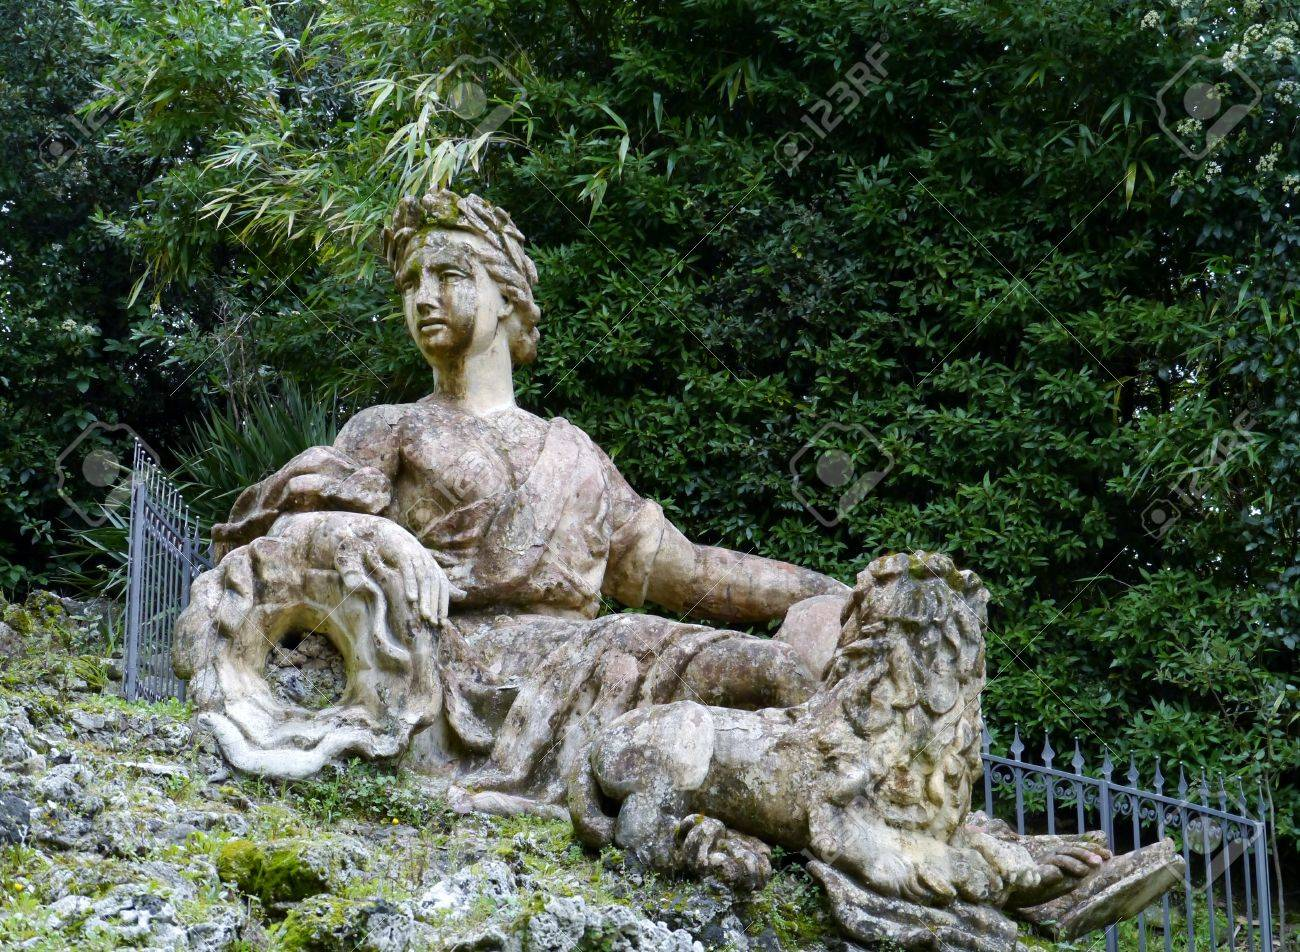 One of the sculptures in the garden of the villa Garzoni in Collodi in Italy Stock Photo - 18786335